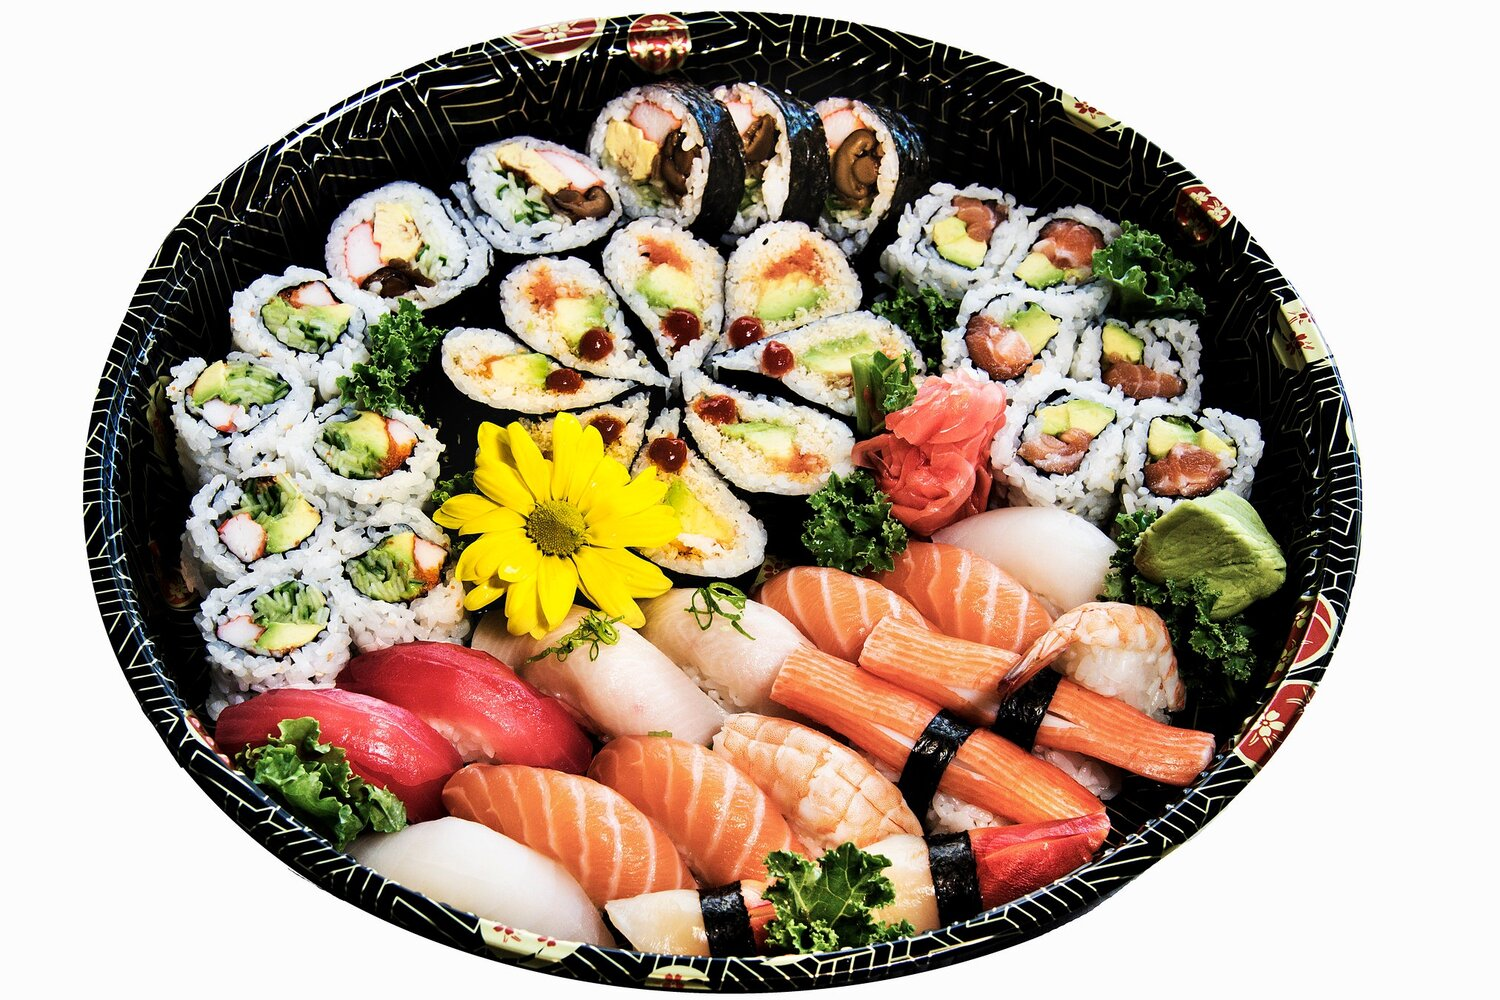 Party Tray A3    Sushi (16) Kamikaze Roll (8)    California (6) Futomaki (4)    Salmon Avocado Roll (6)